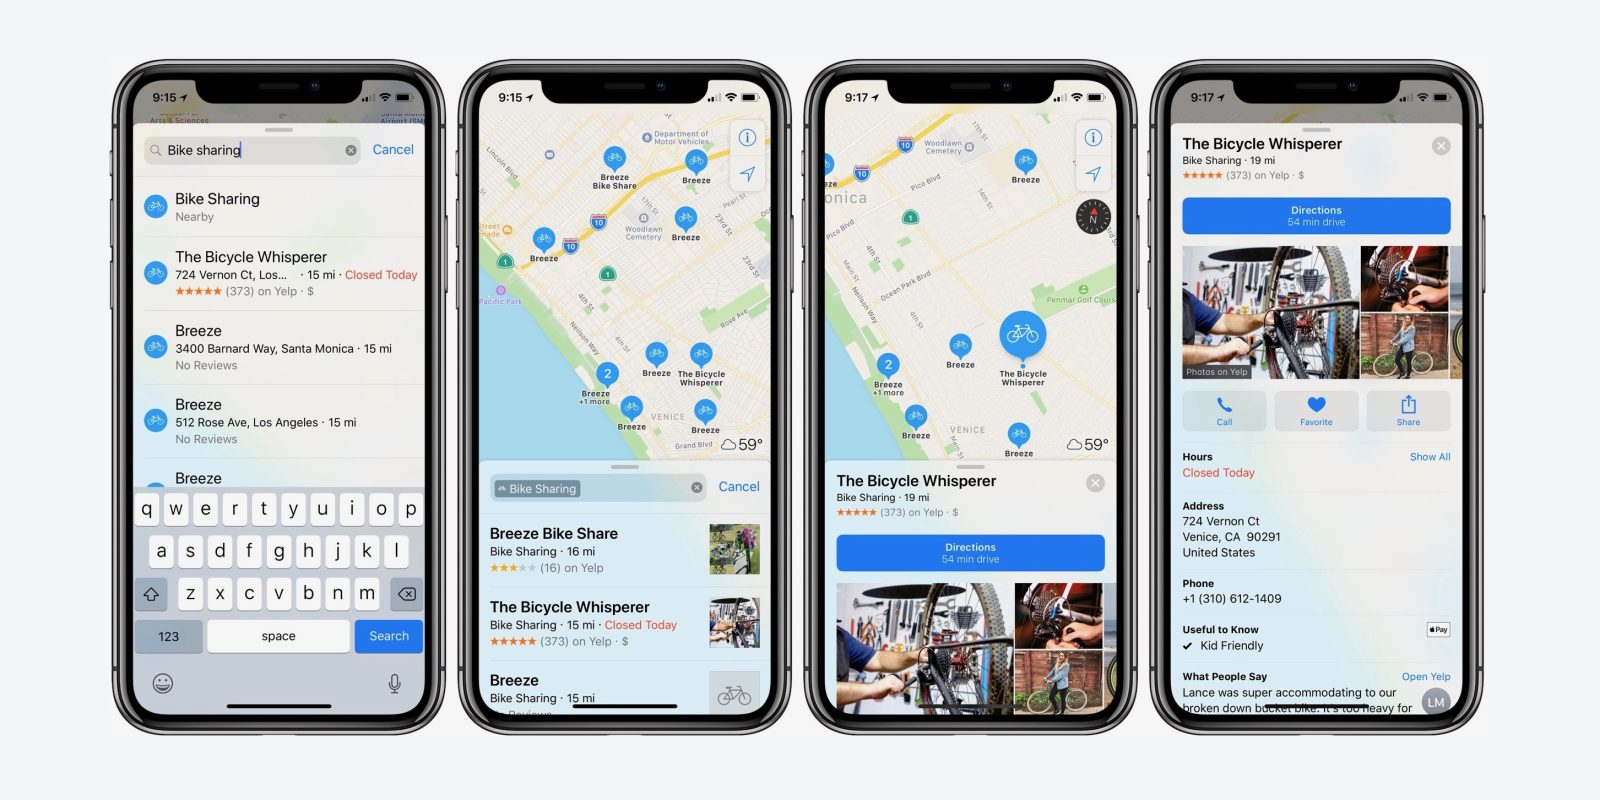 Apple Maps: Tips, Tricks, Features, and News - 9to5Mac on